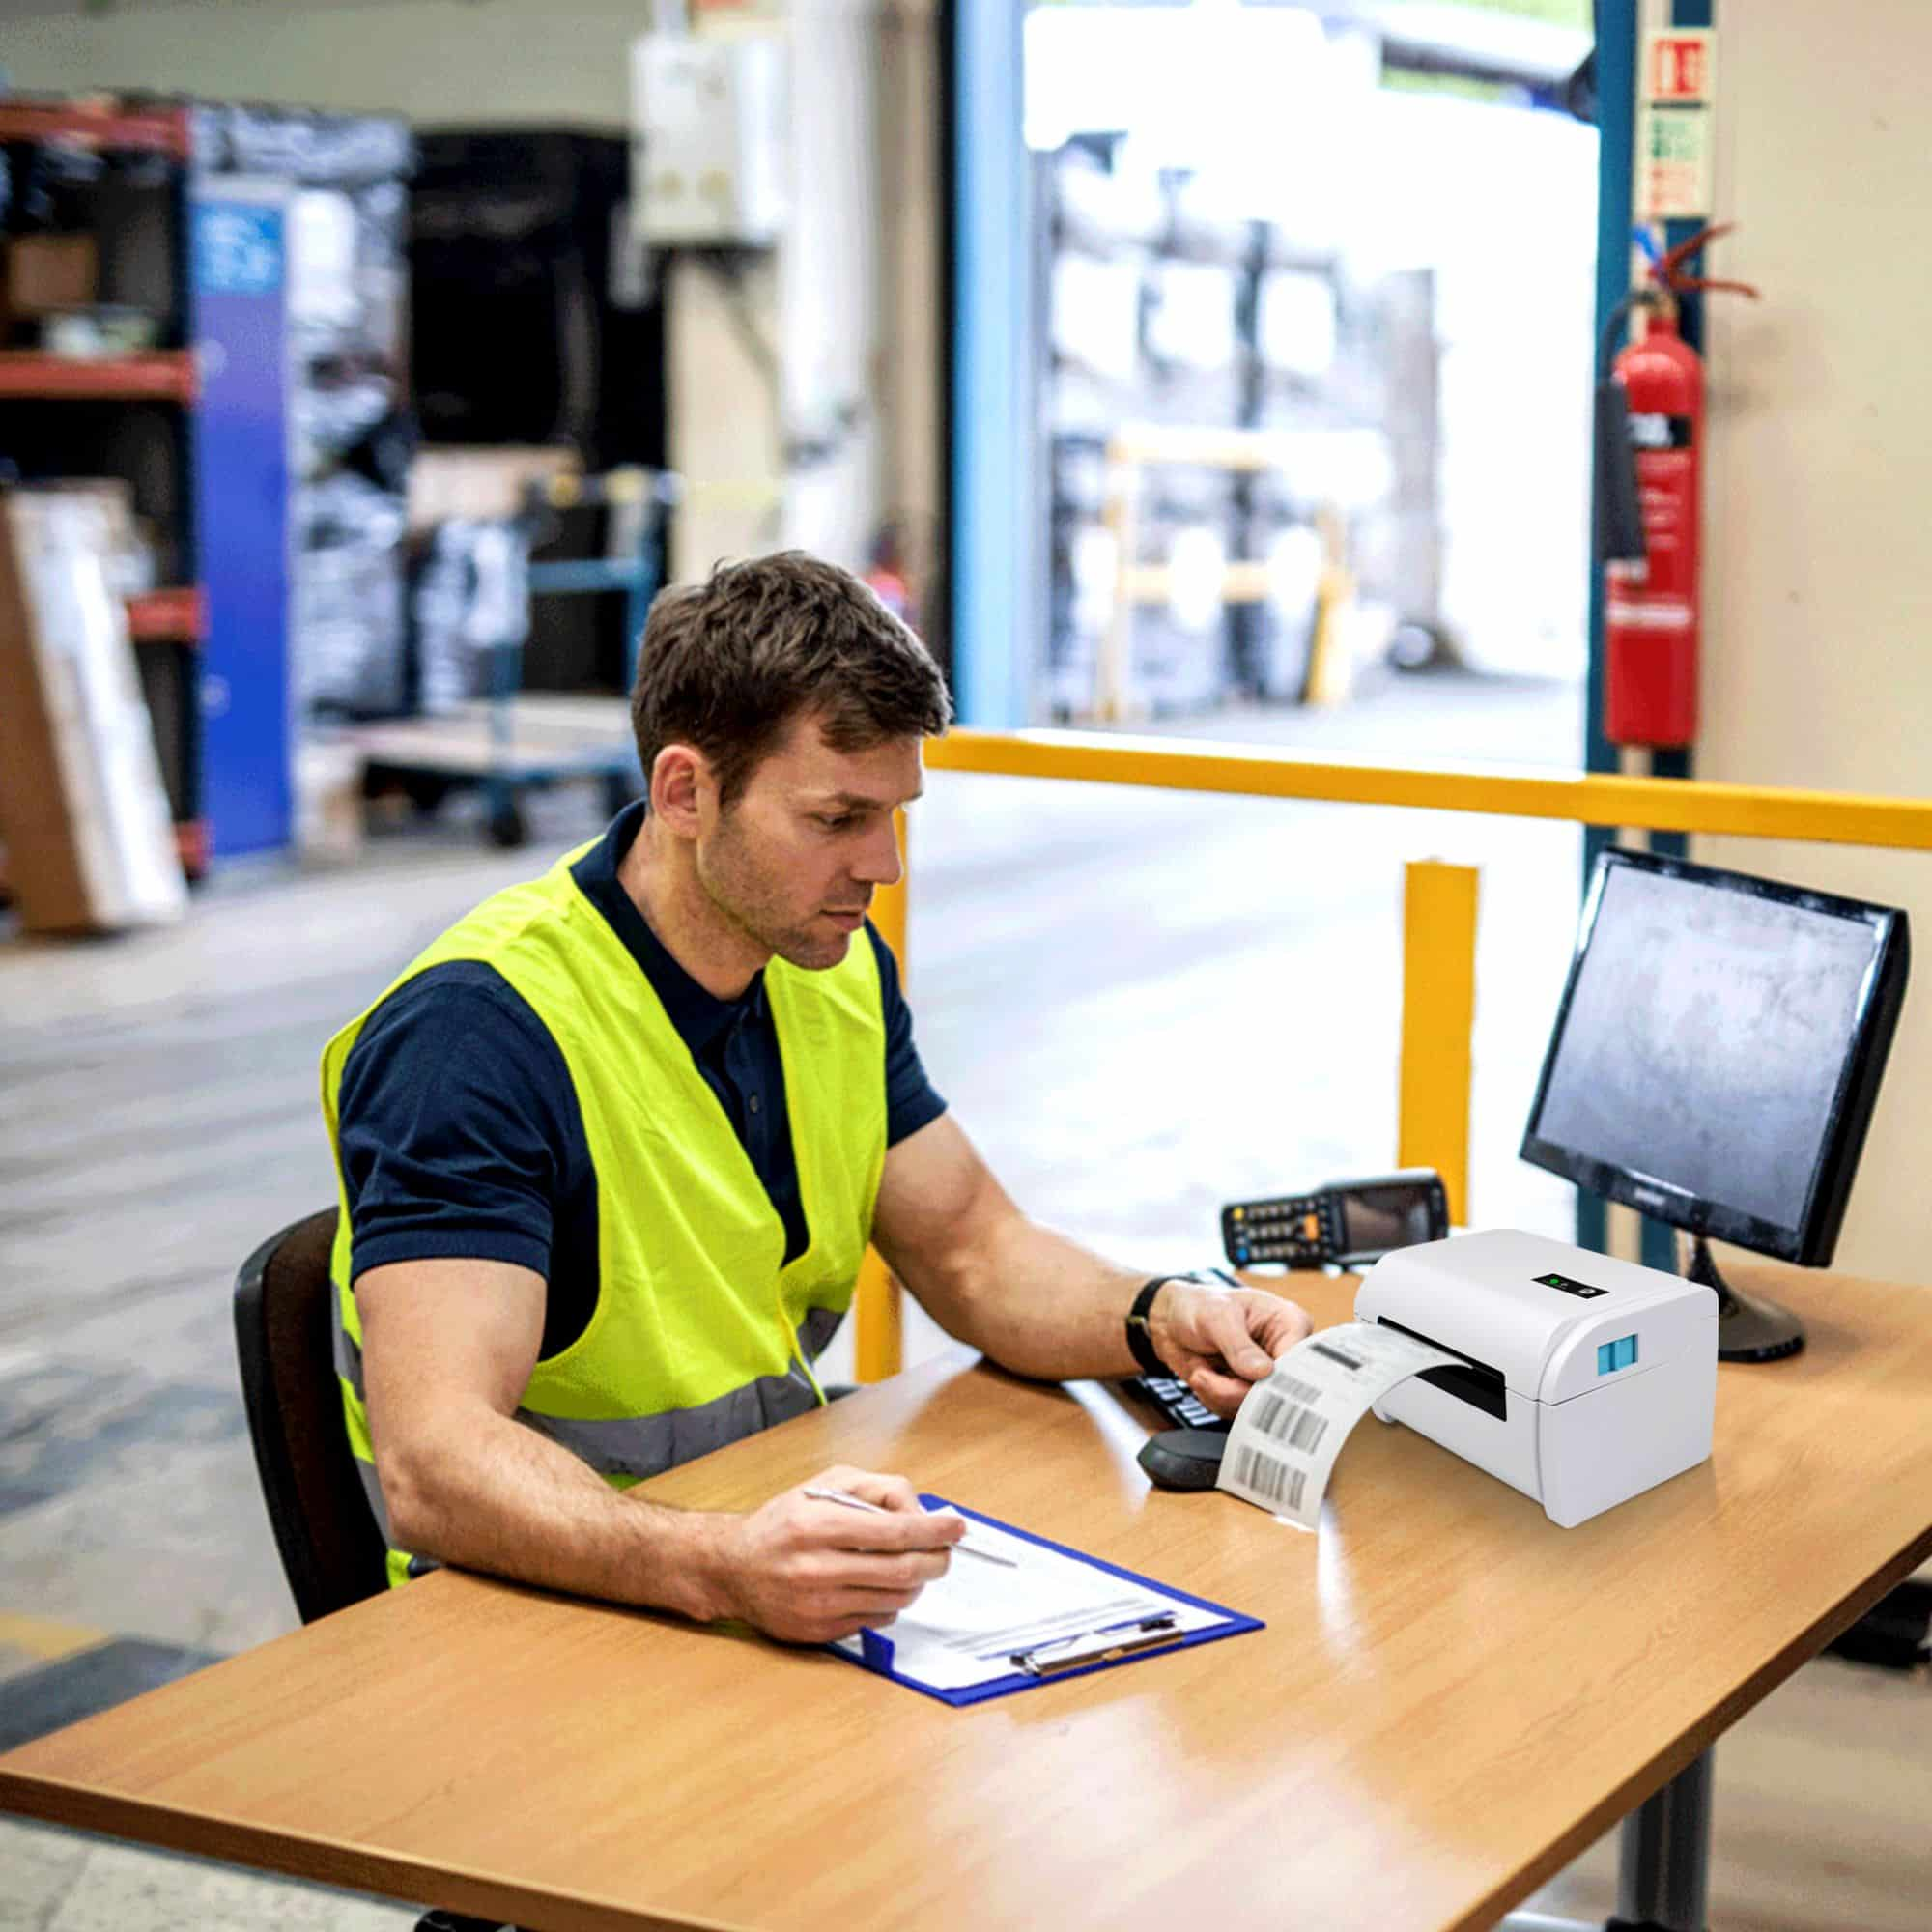 Things That You Should Consider While Purchasing 4 Inch Label Printers